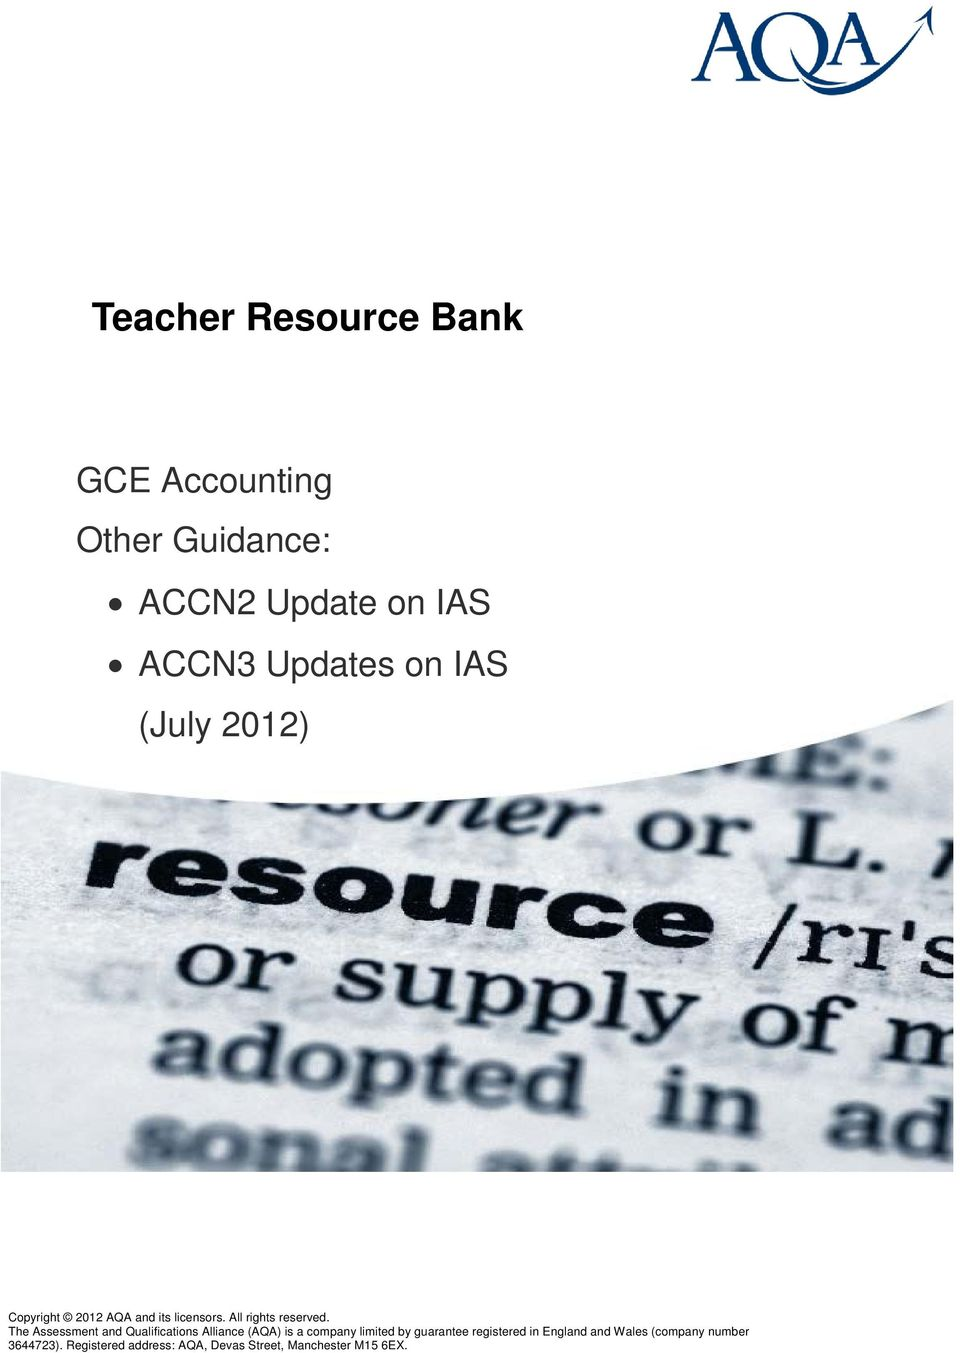 The Assessment and Qualifications Alliance (AQA) is a company limited by